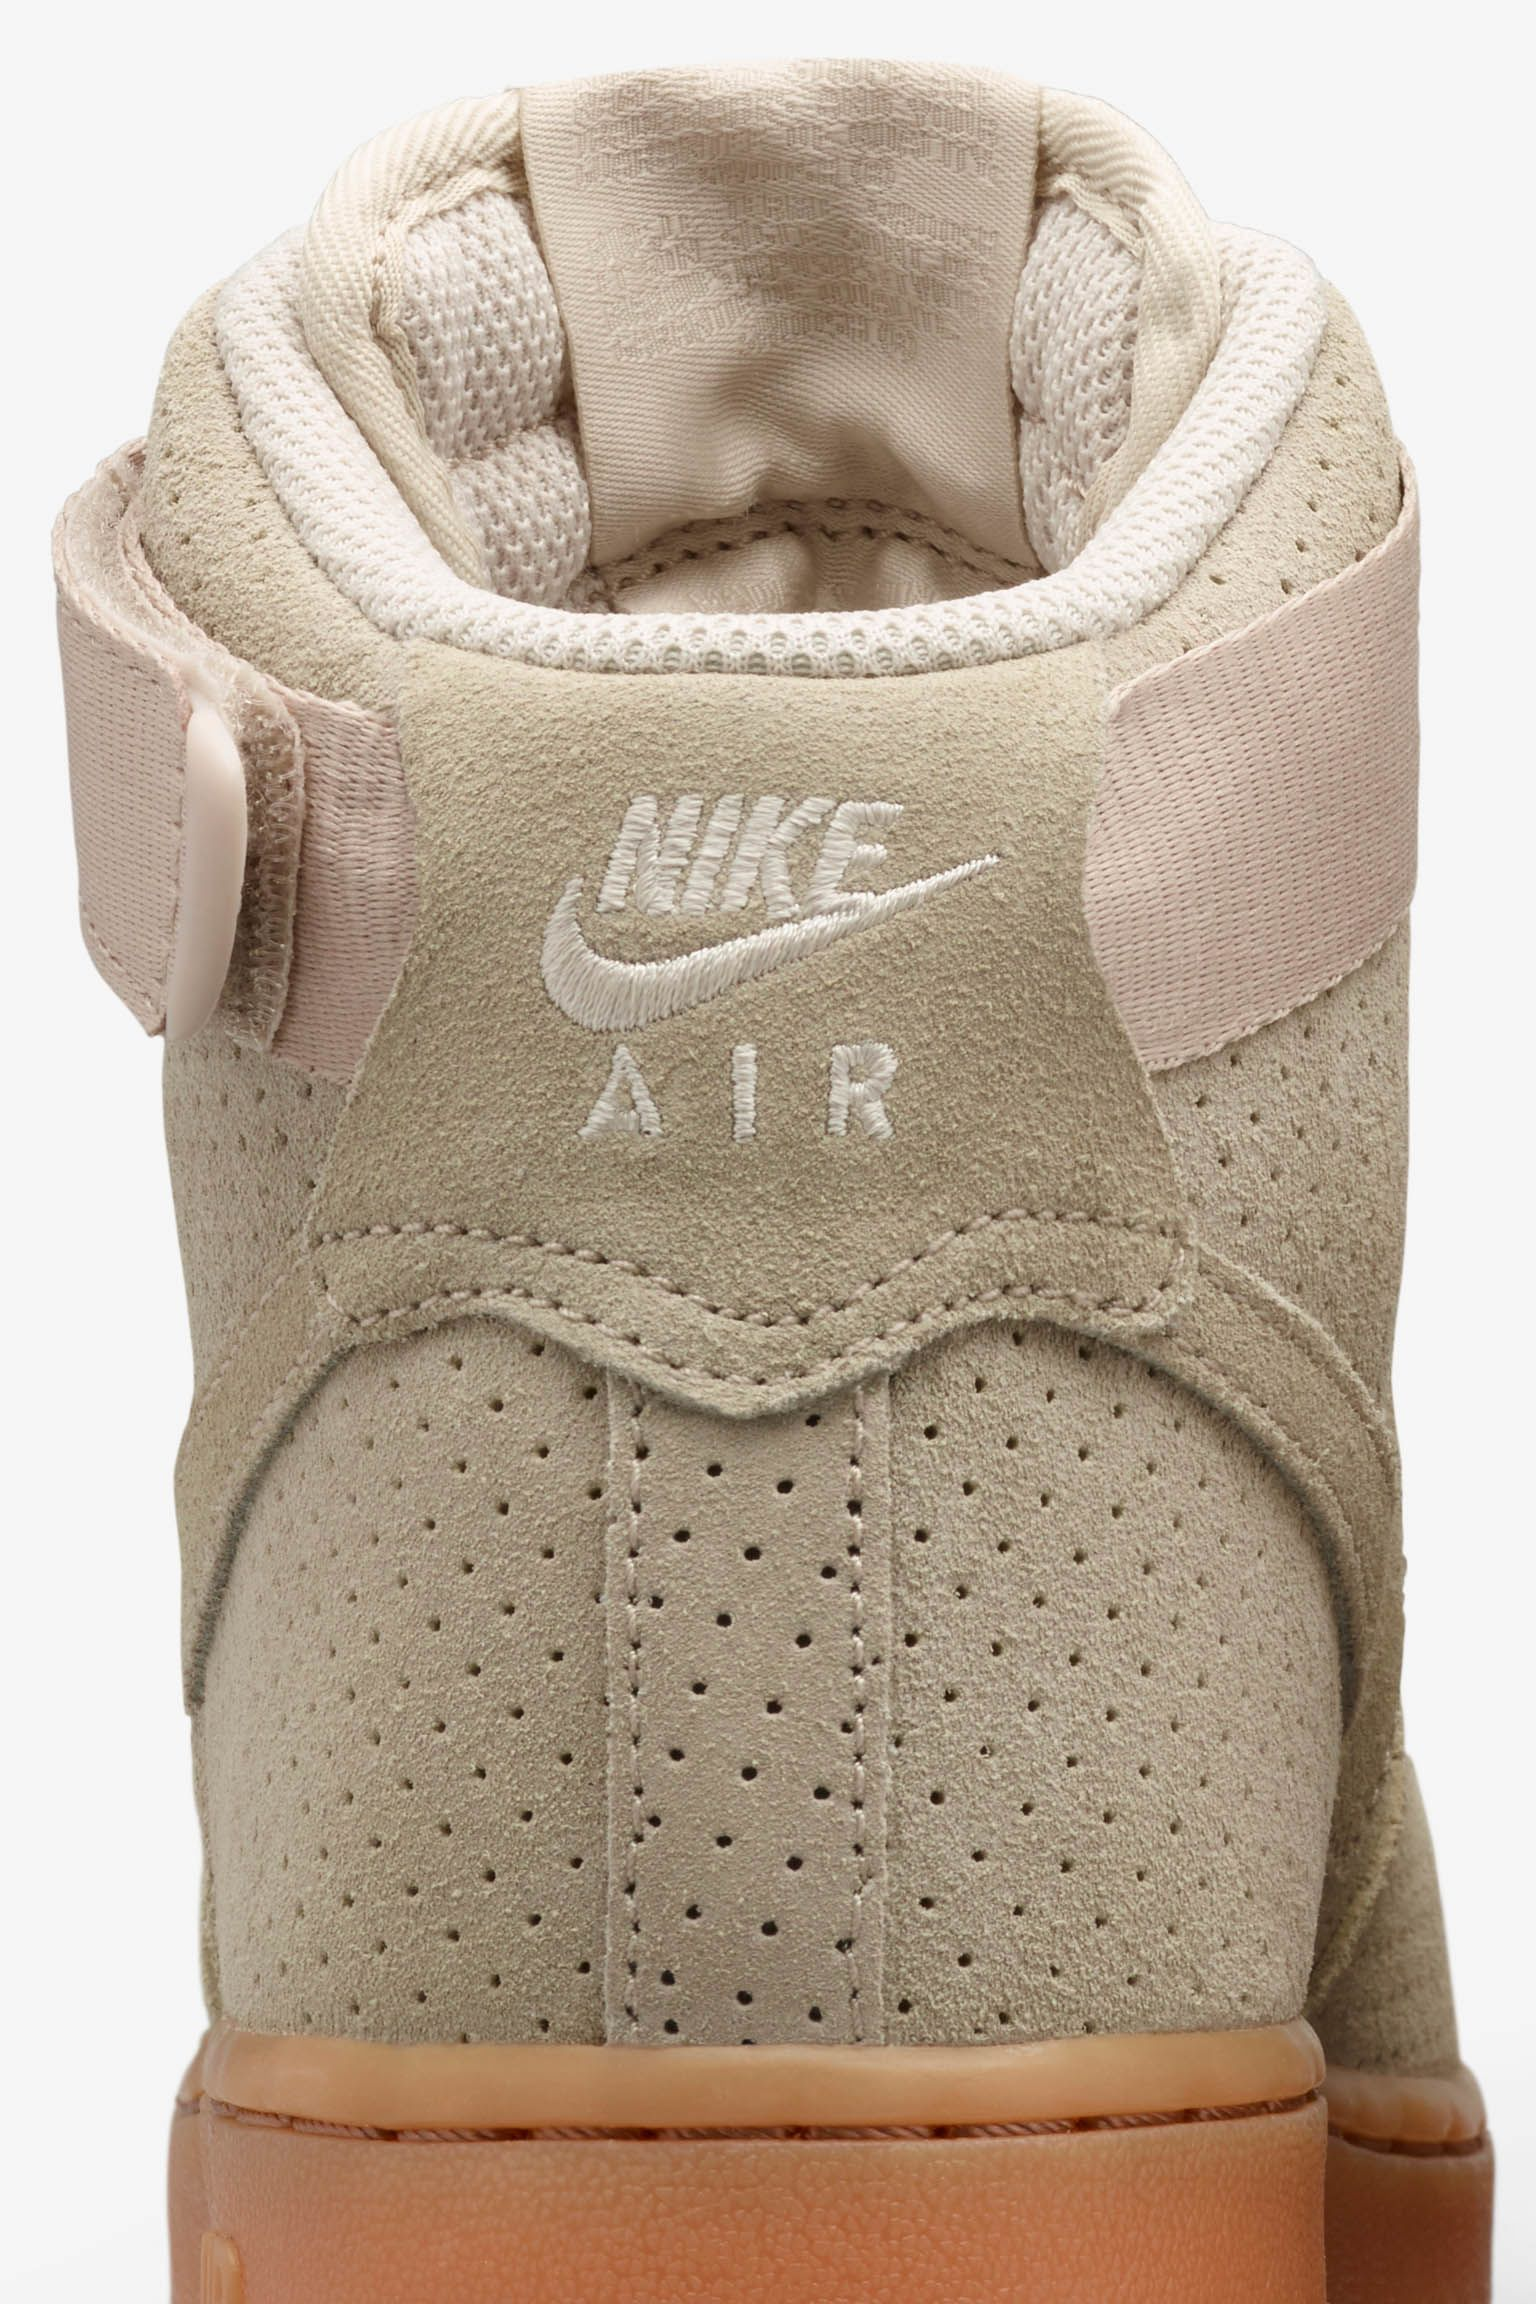 Women's Nike Air Force 1 Hi 'Suede & Gum'